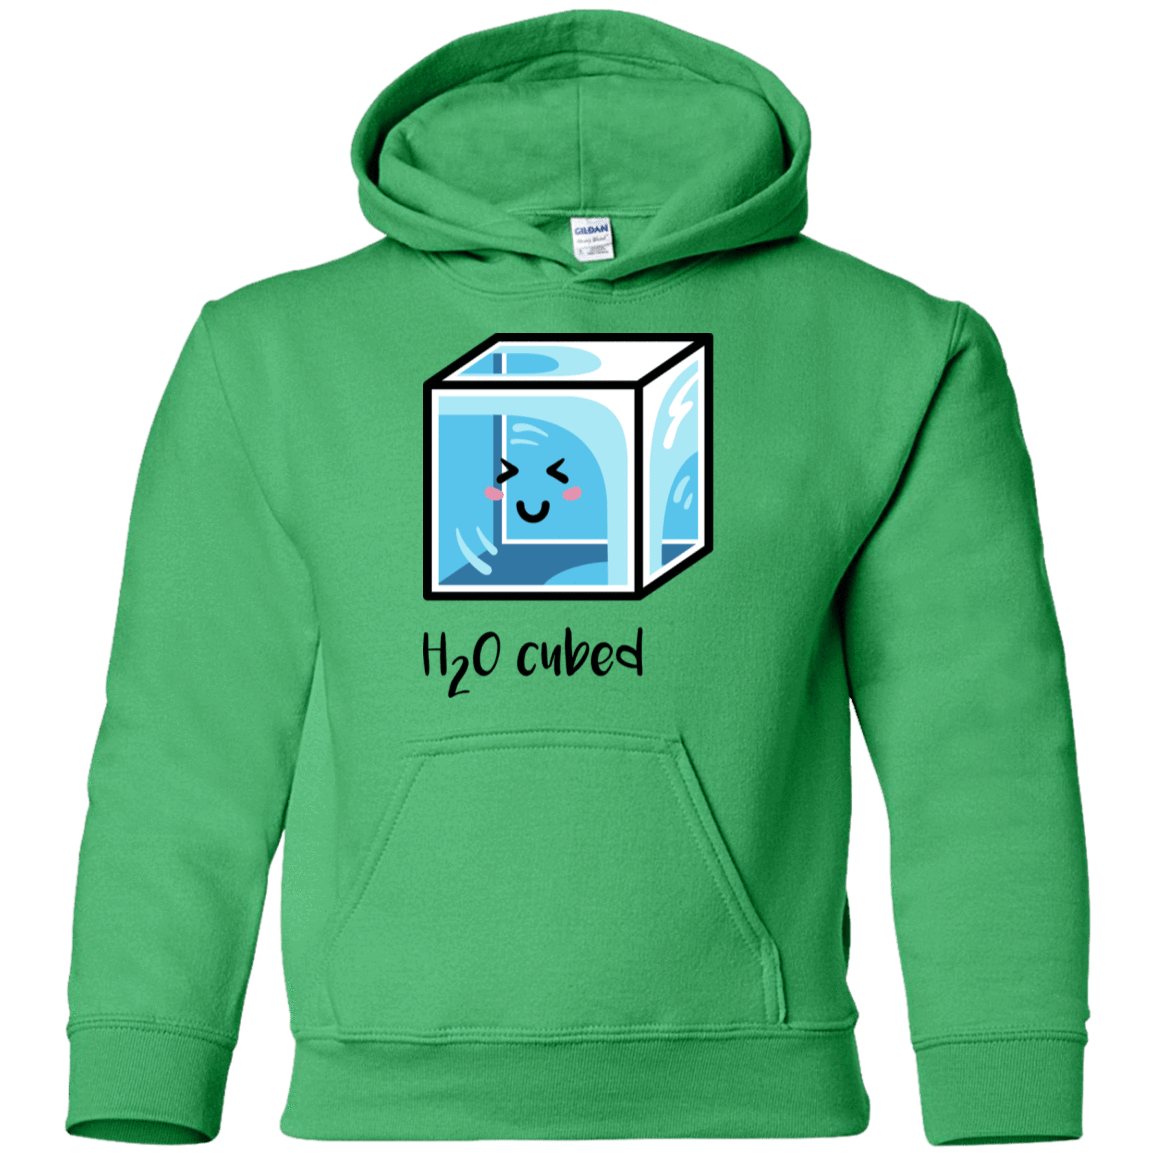 Sweatshirts Irish Green / YS H2O Cubed Youth Hoodie